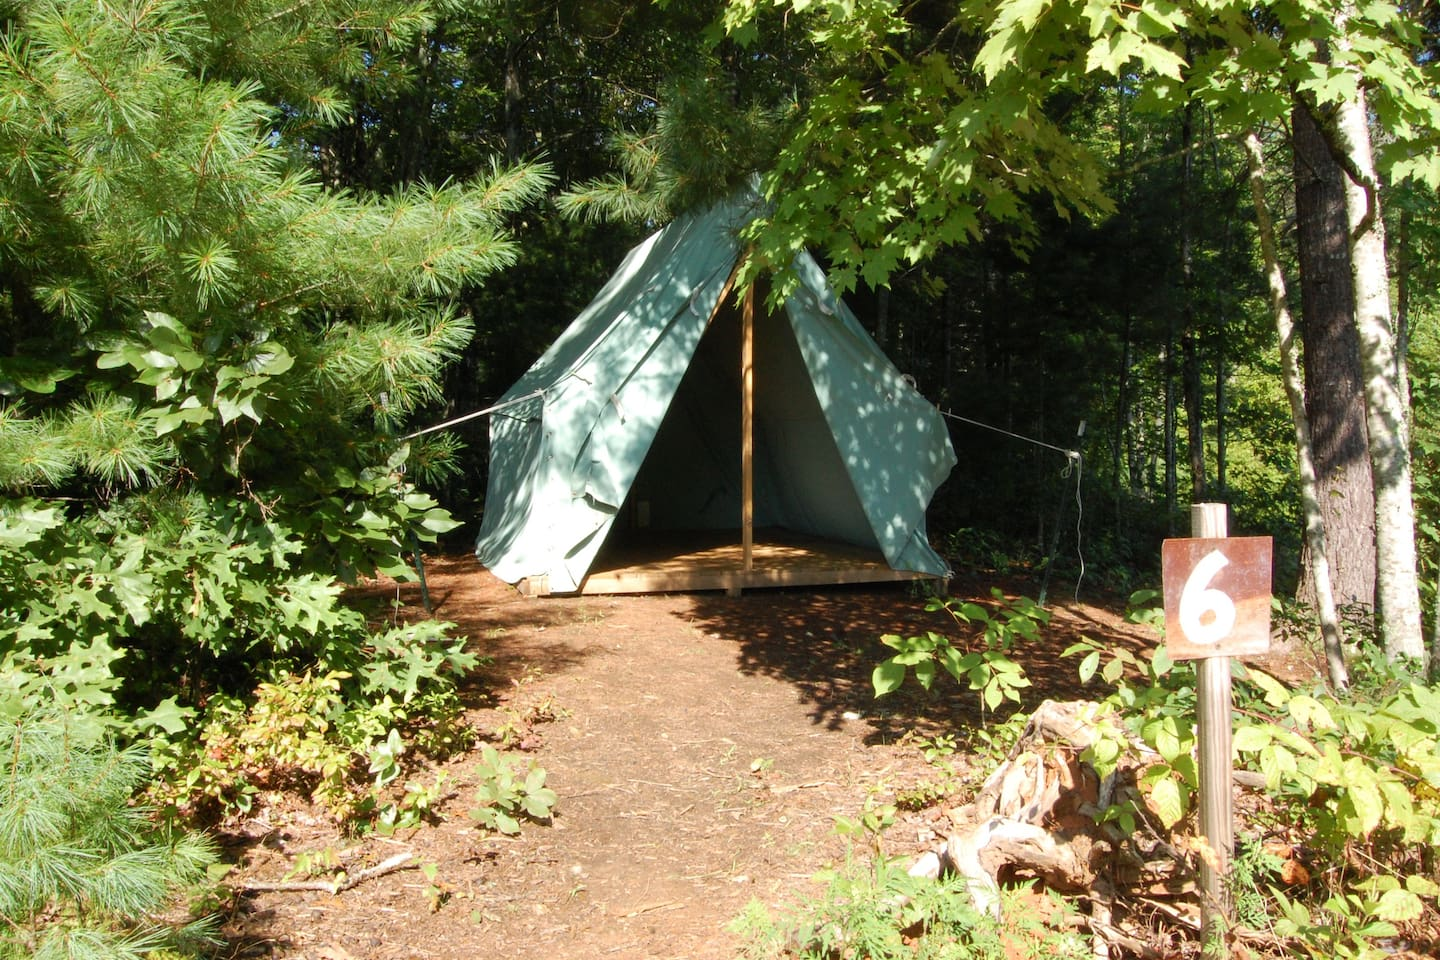 """The """"Woods Tent"""" is tucked away in the trees"""